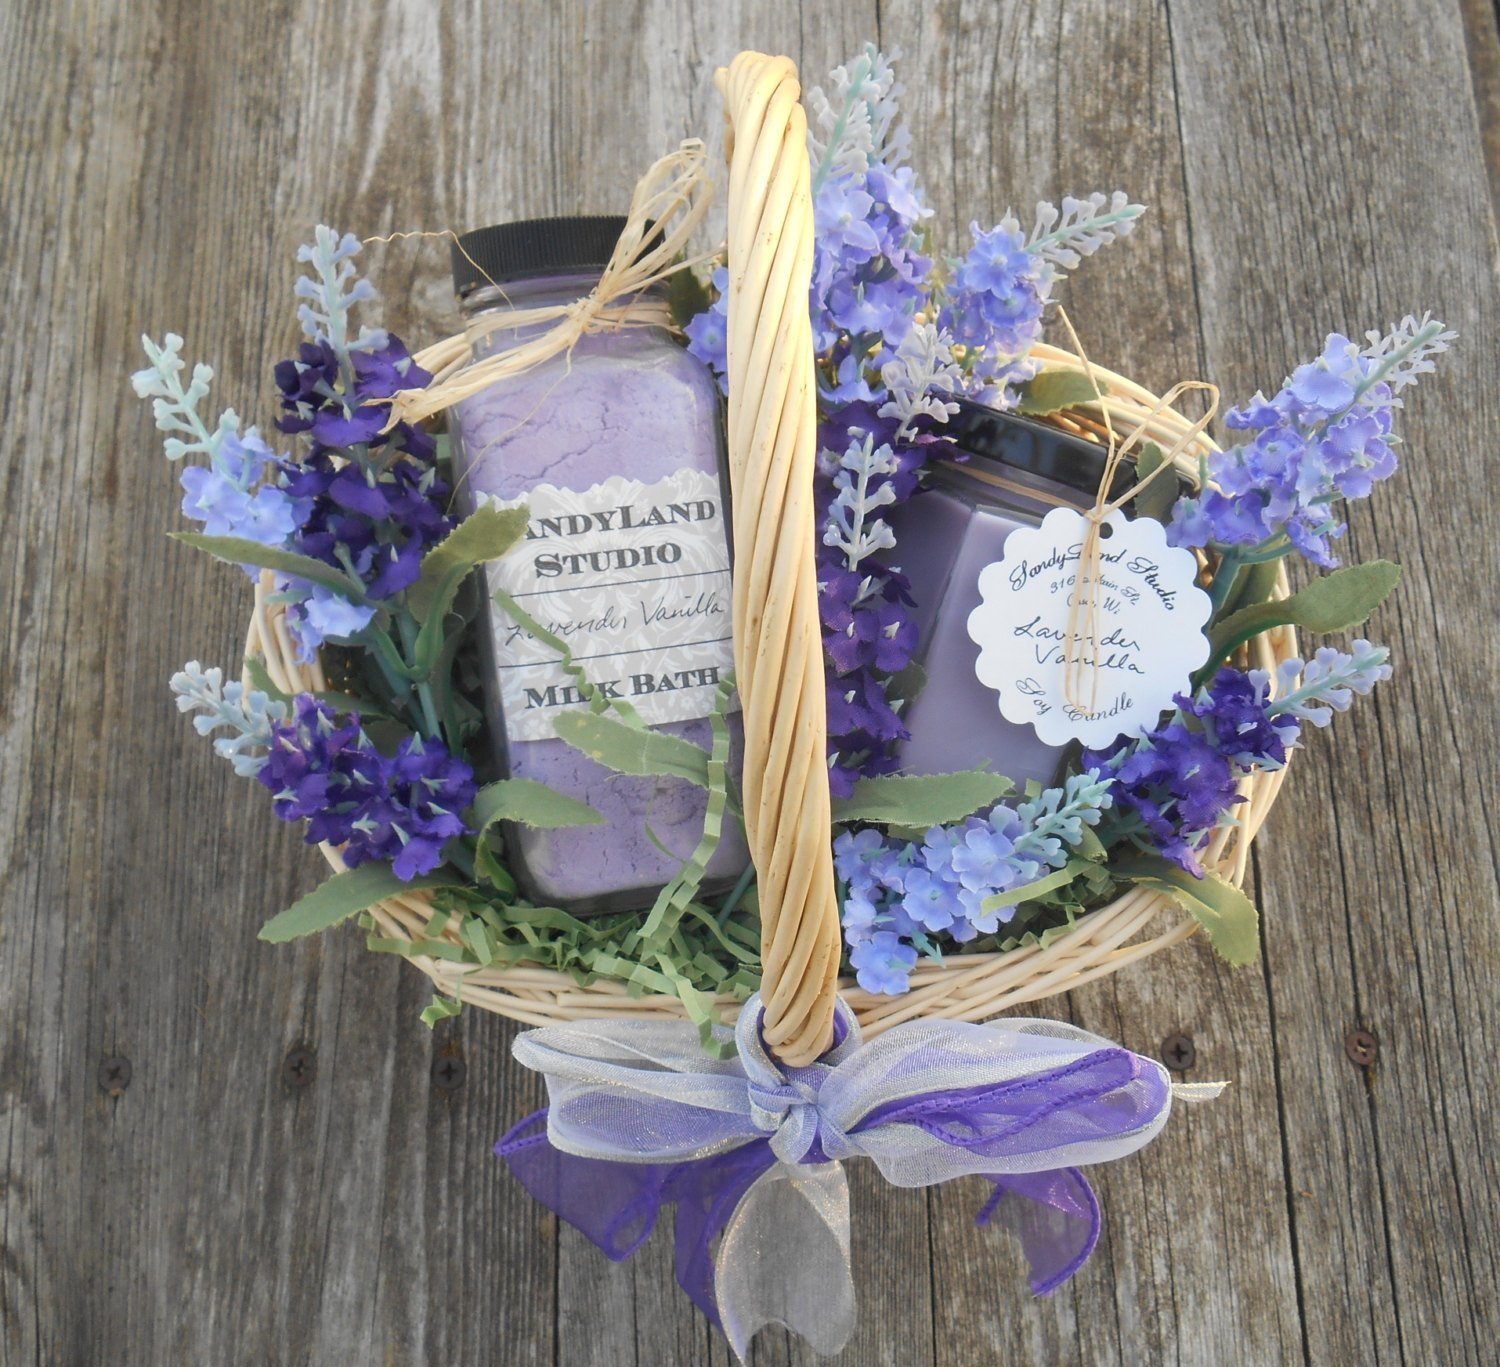 Lavender Vanilla Soy Candle and Milk Bath Spa Gift Basket